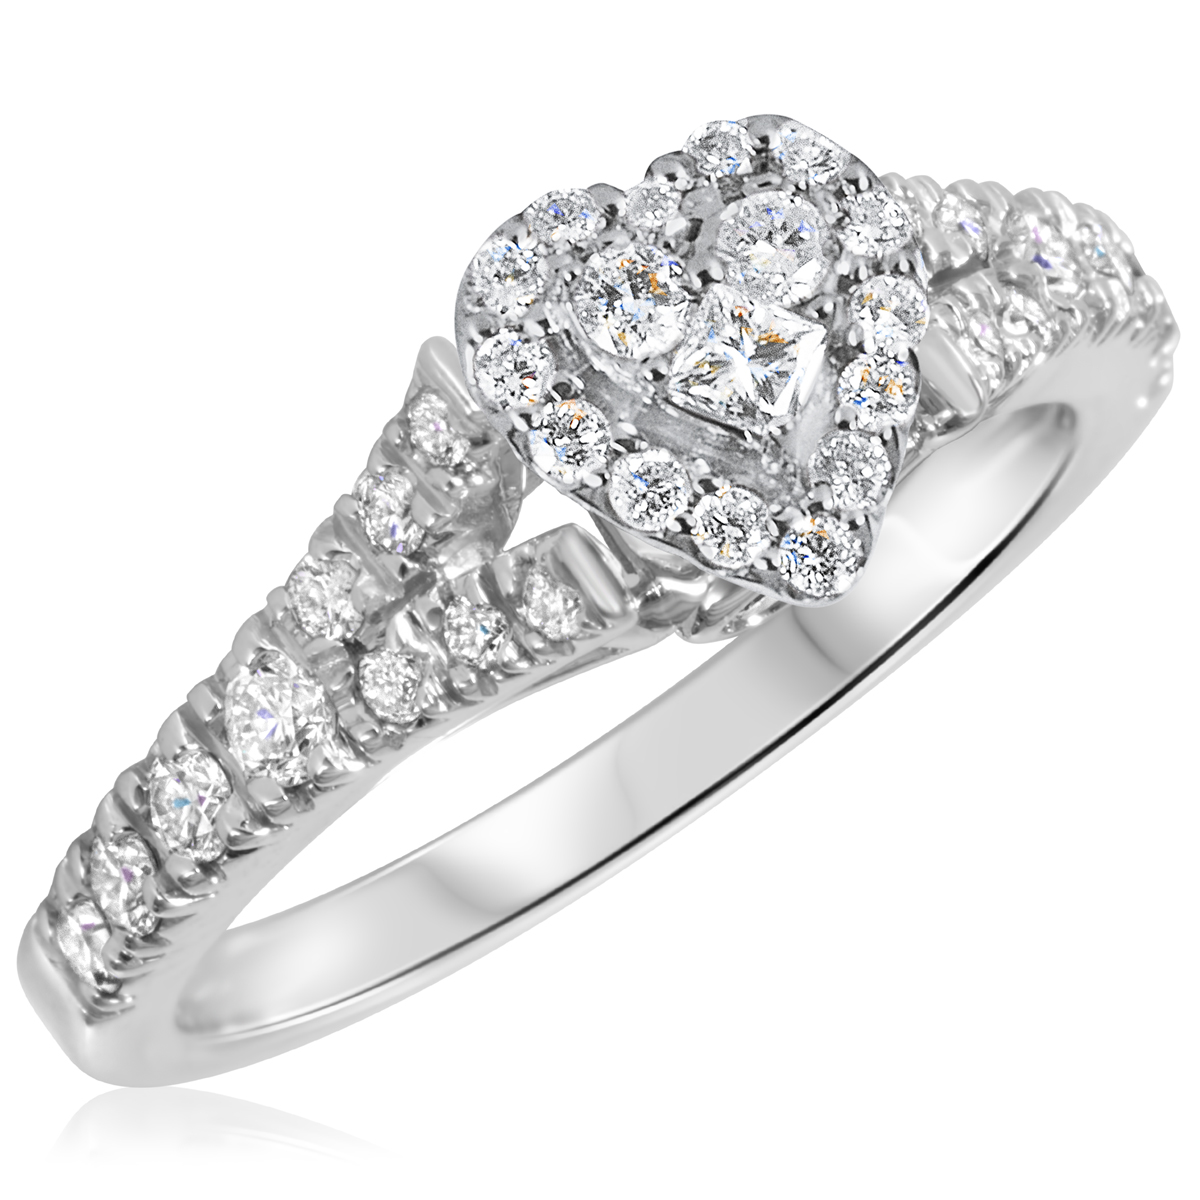 2/3 CT. T.W. Diamond Ladies Engagement Ring 14K White Gold